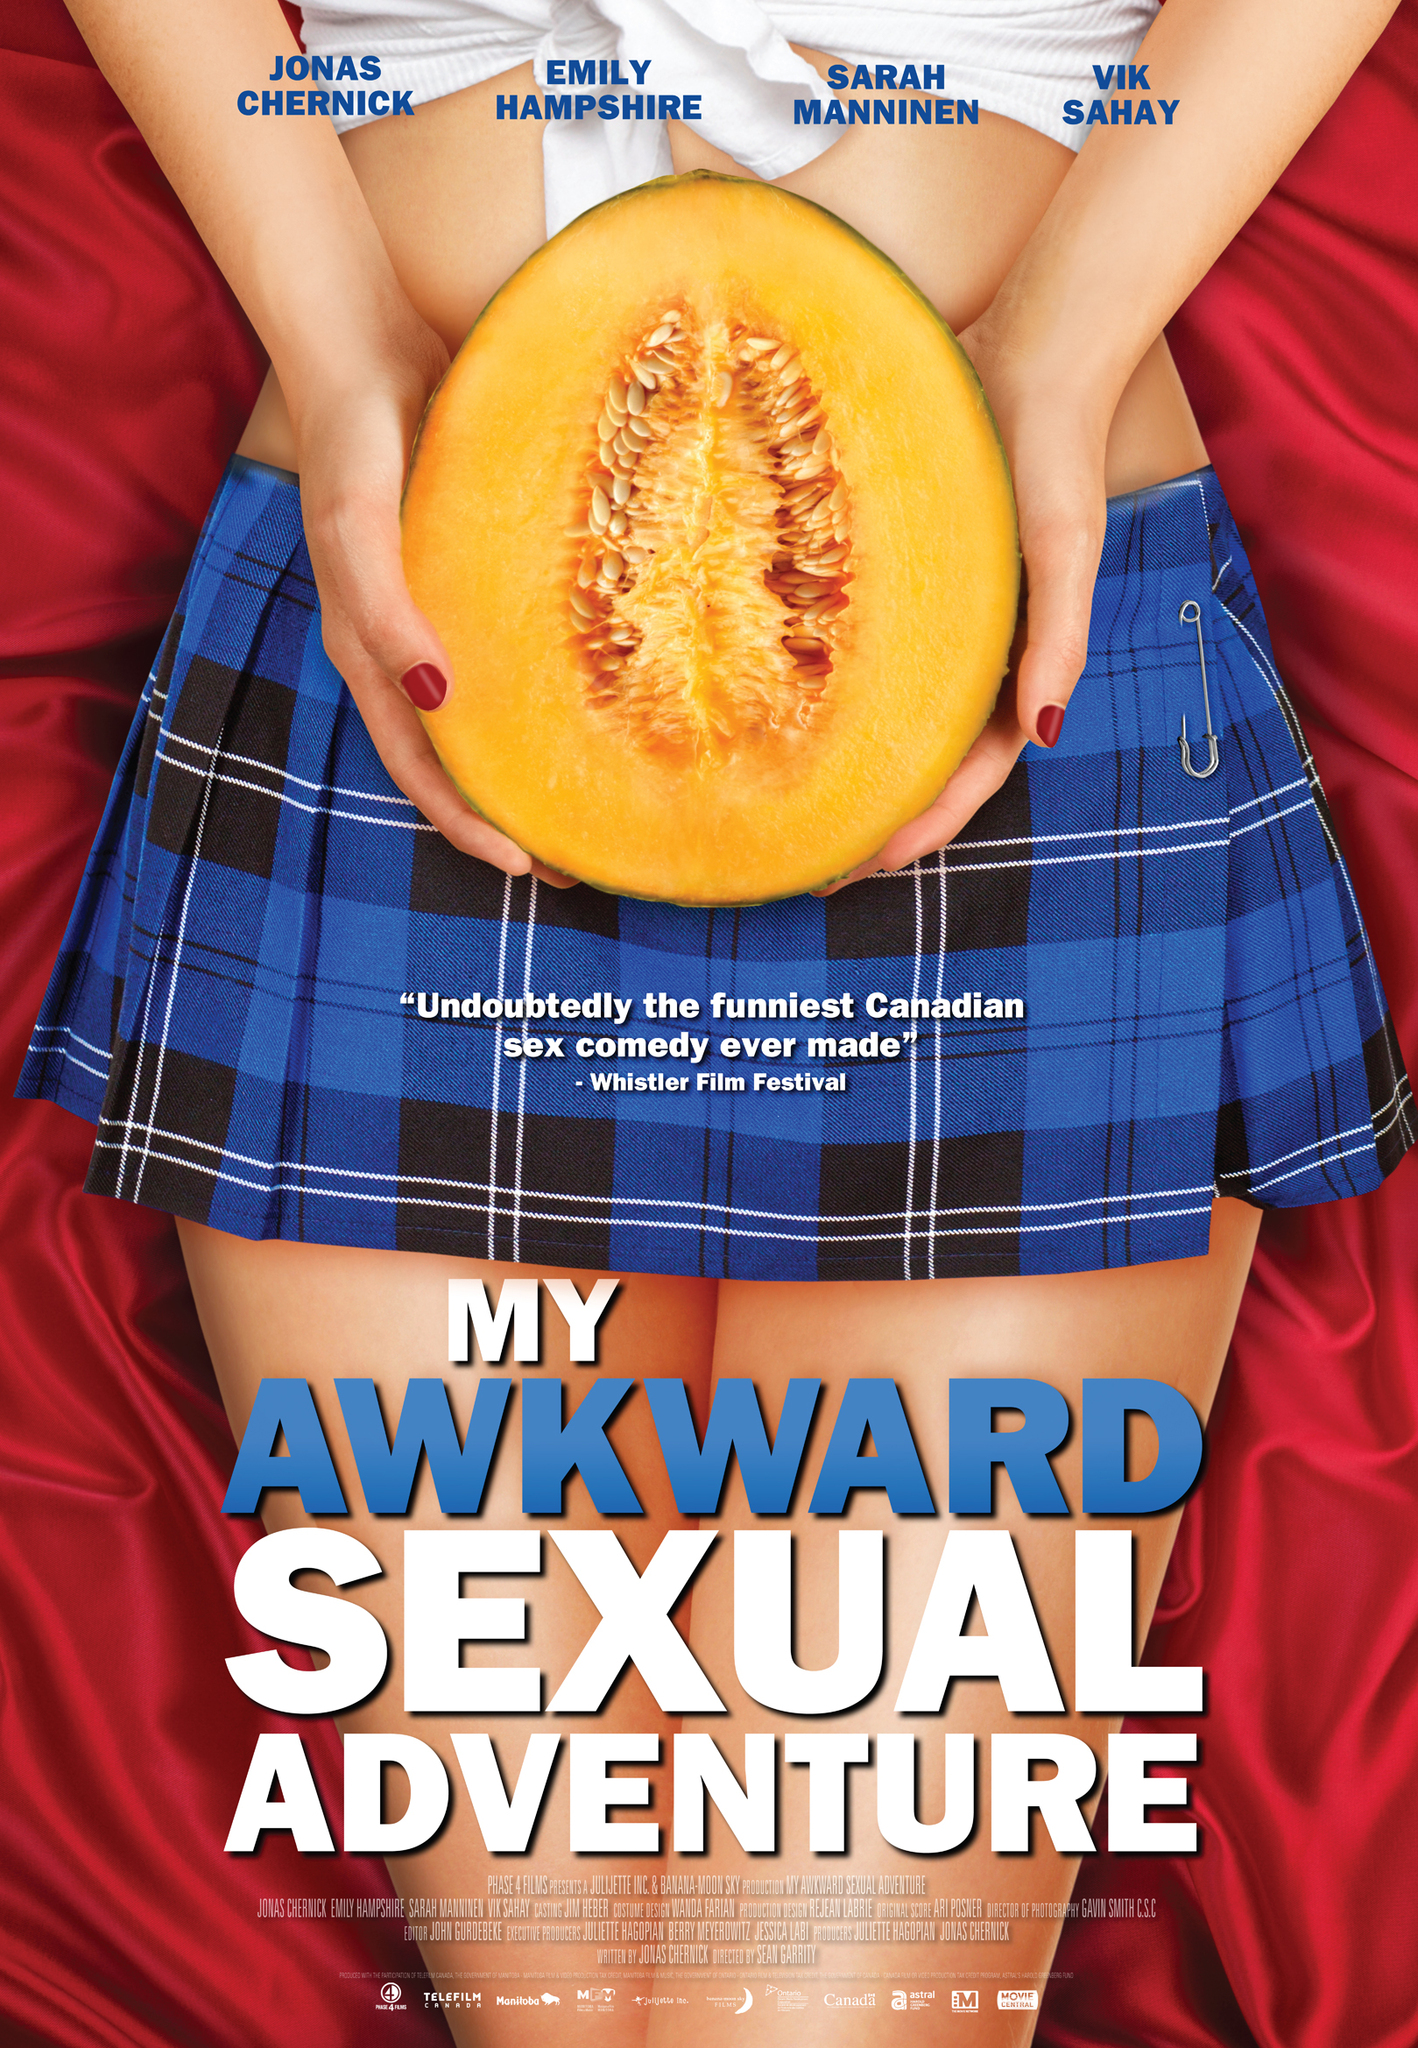 My awkward sexual adventure full movie